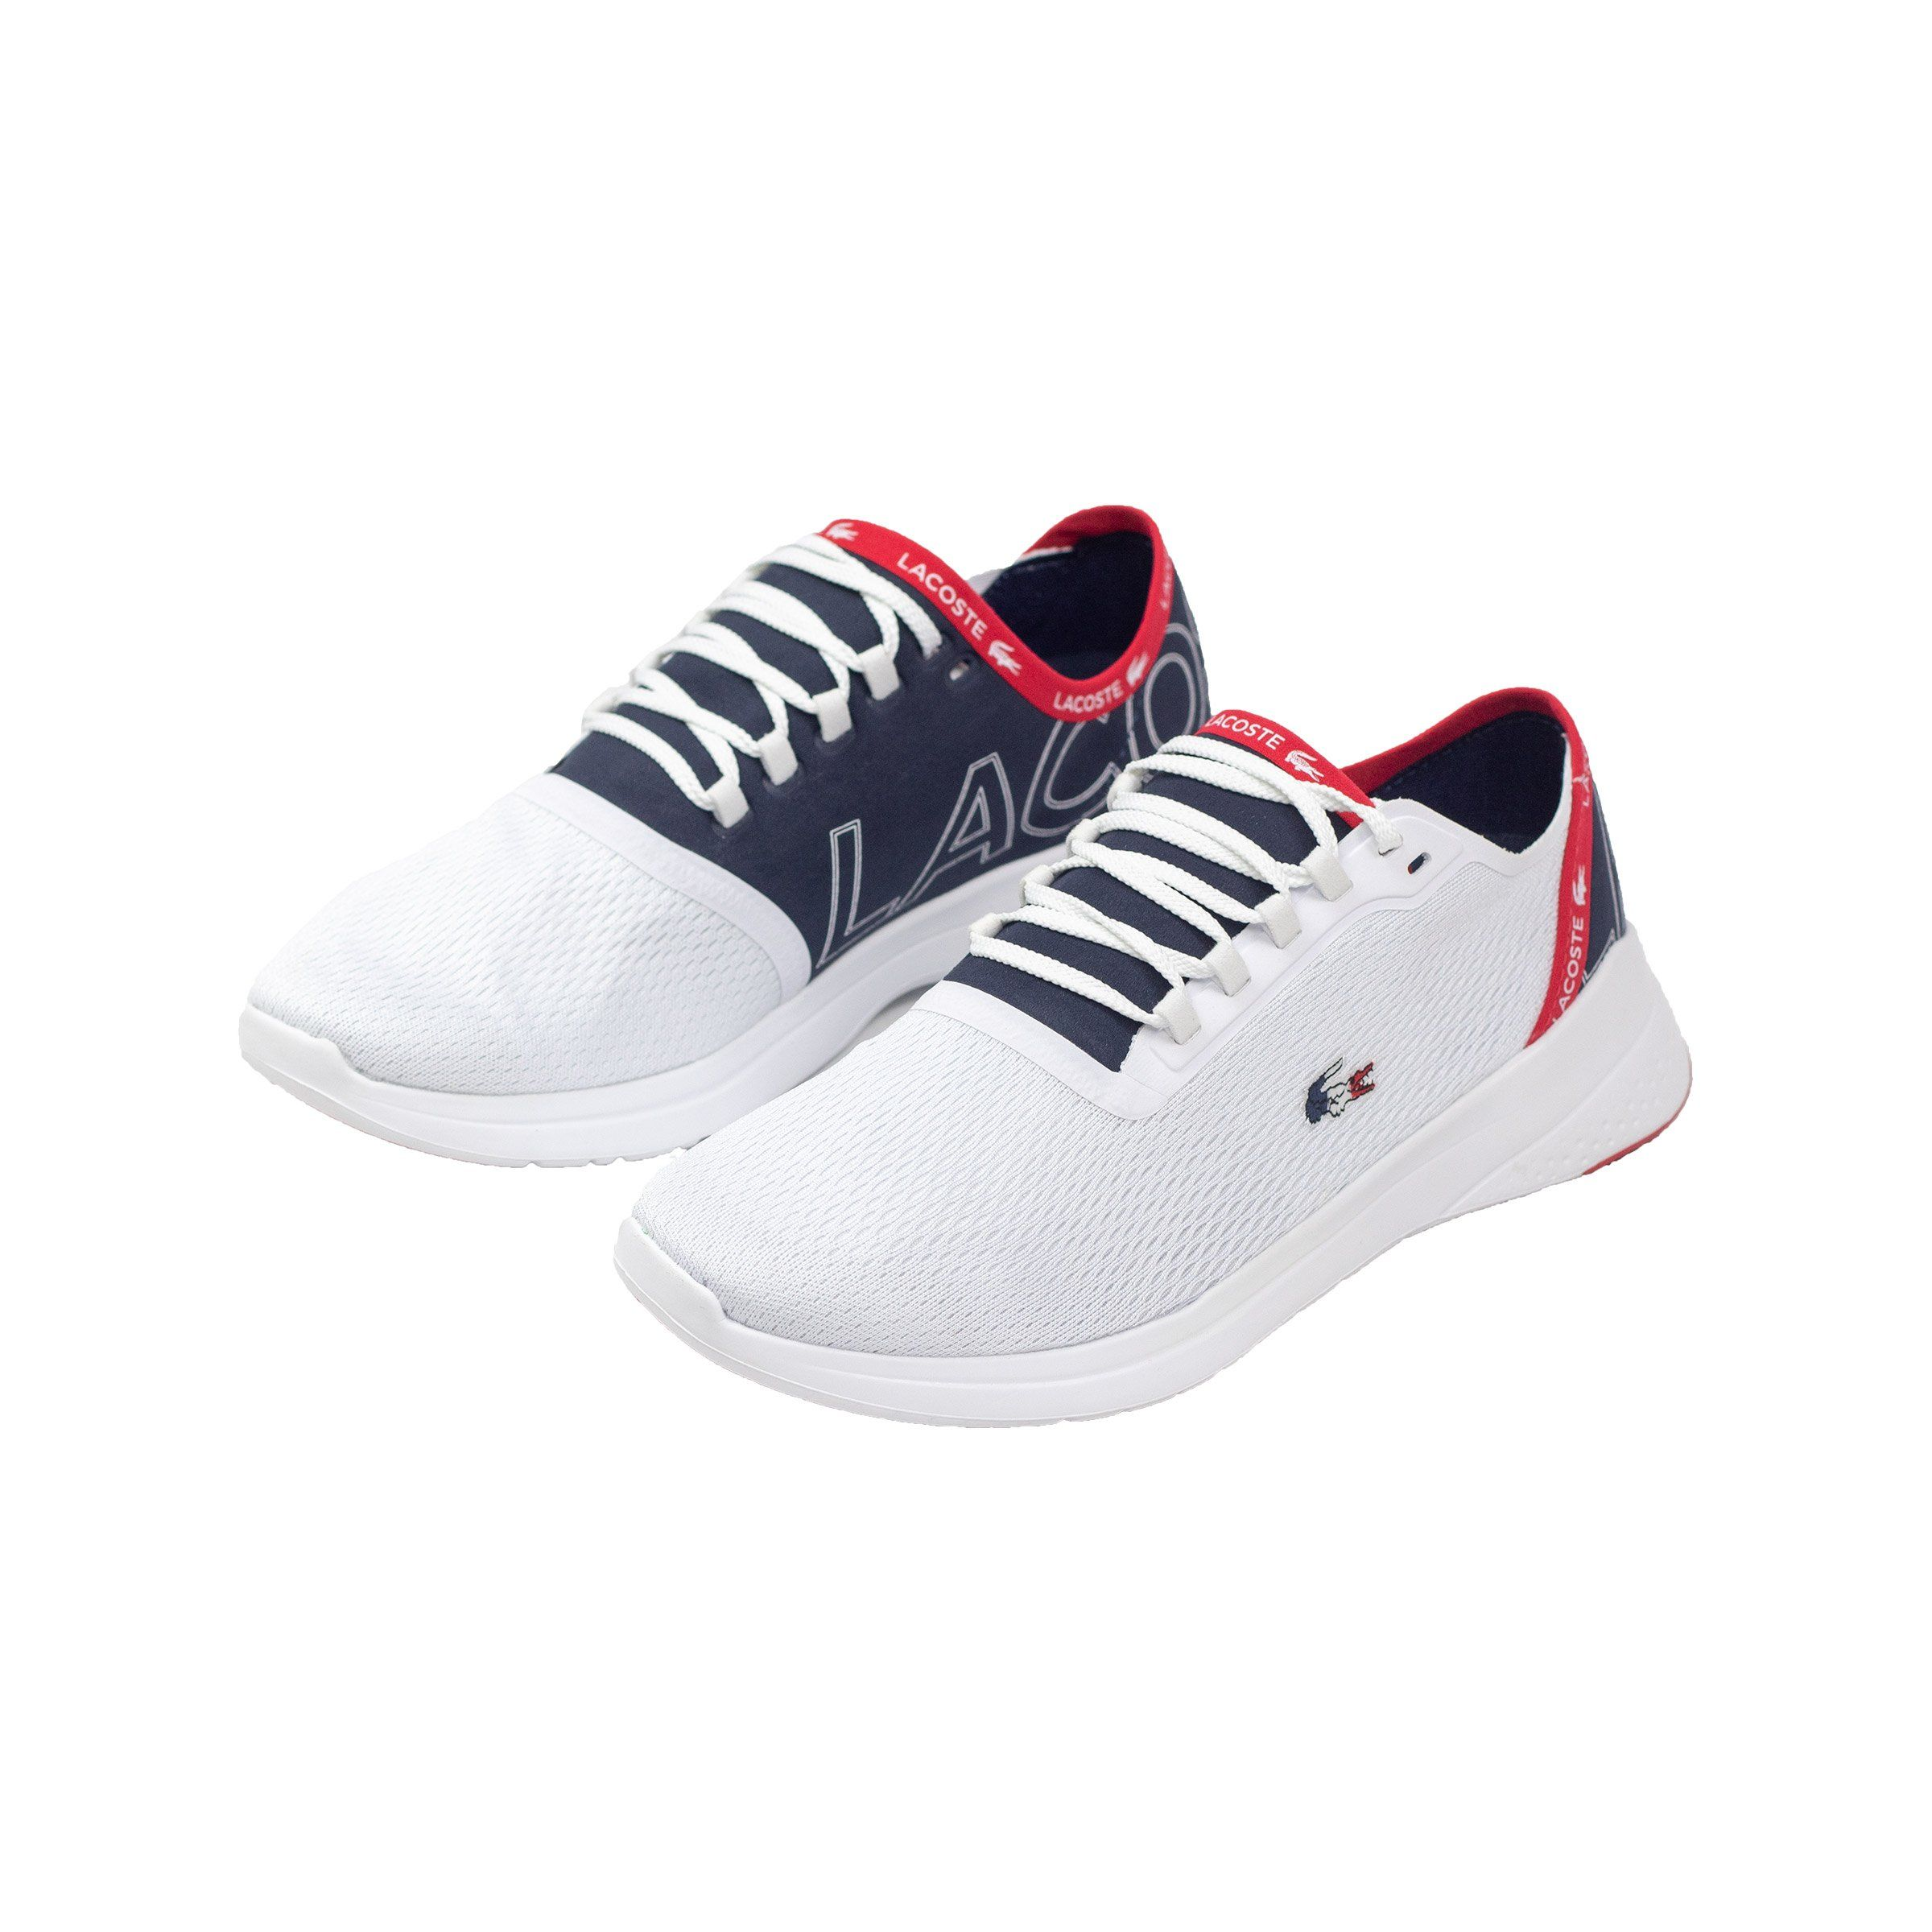 59fddabe Lacoste Men's LT Fit Textile Sneakers in 2019 | Products | Sneakers ...